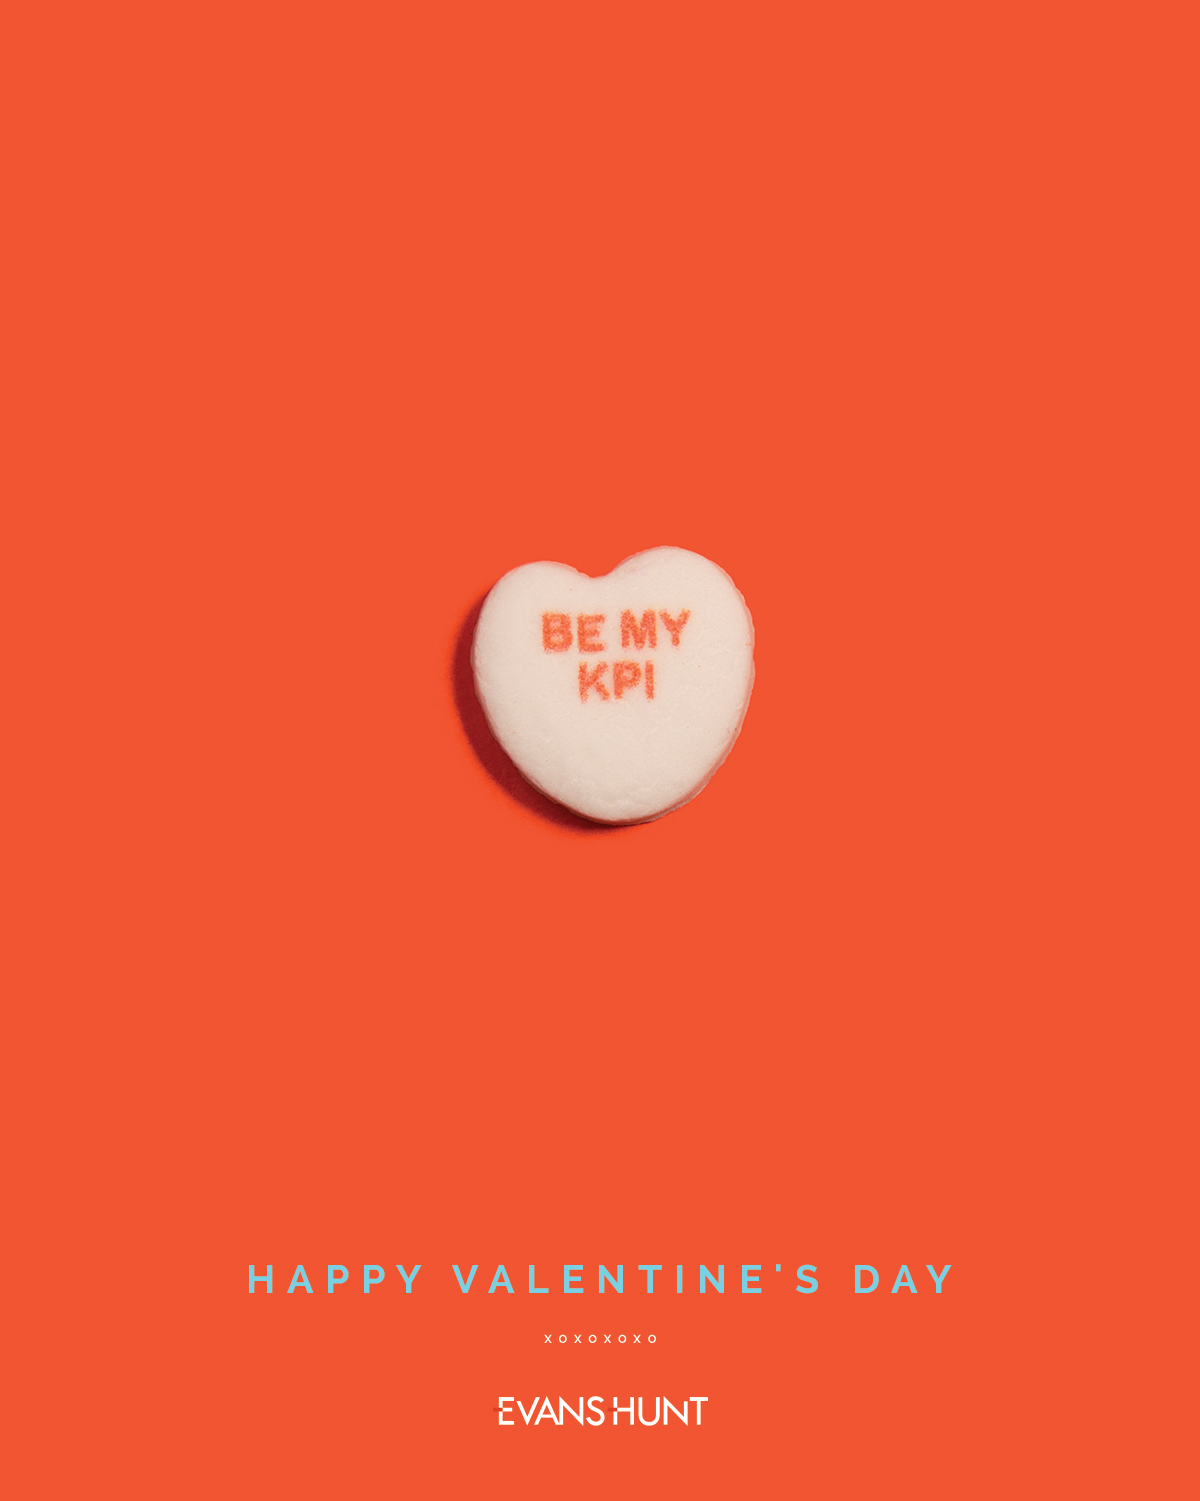 8 Valentines Day Marketing Campaigns That Arent Boring The